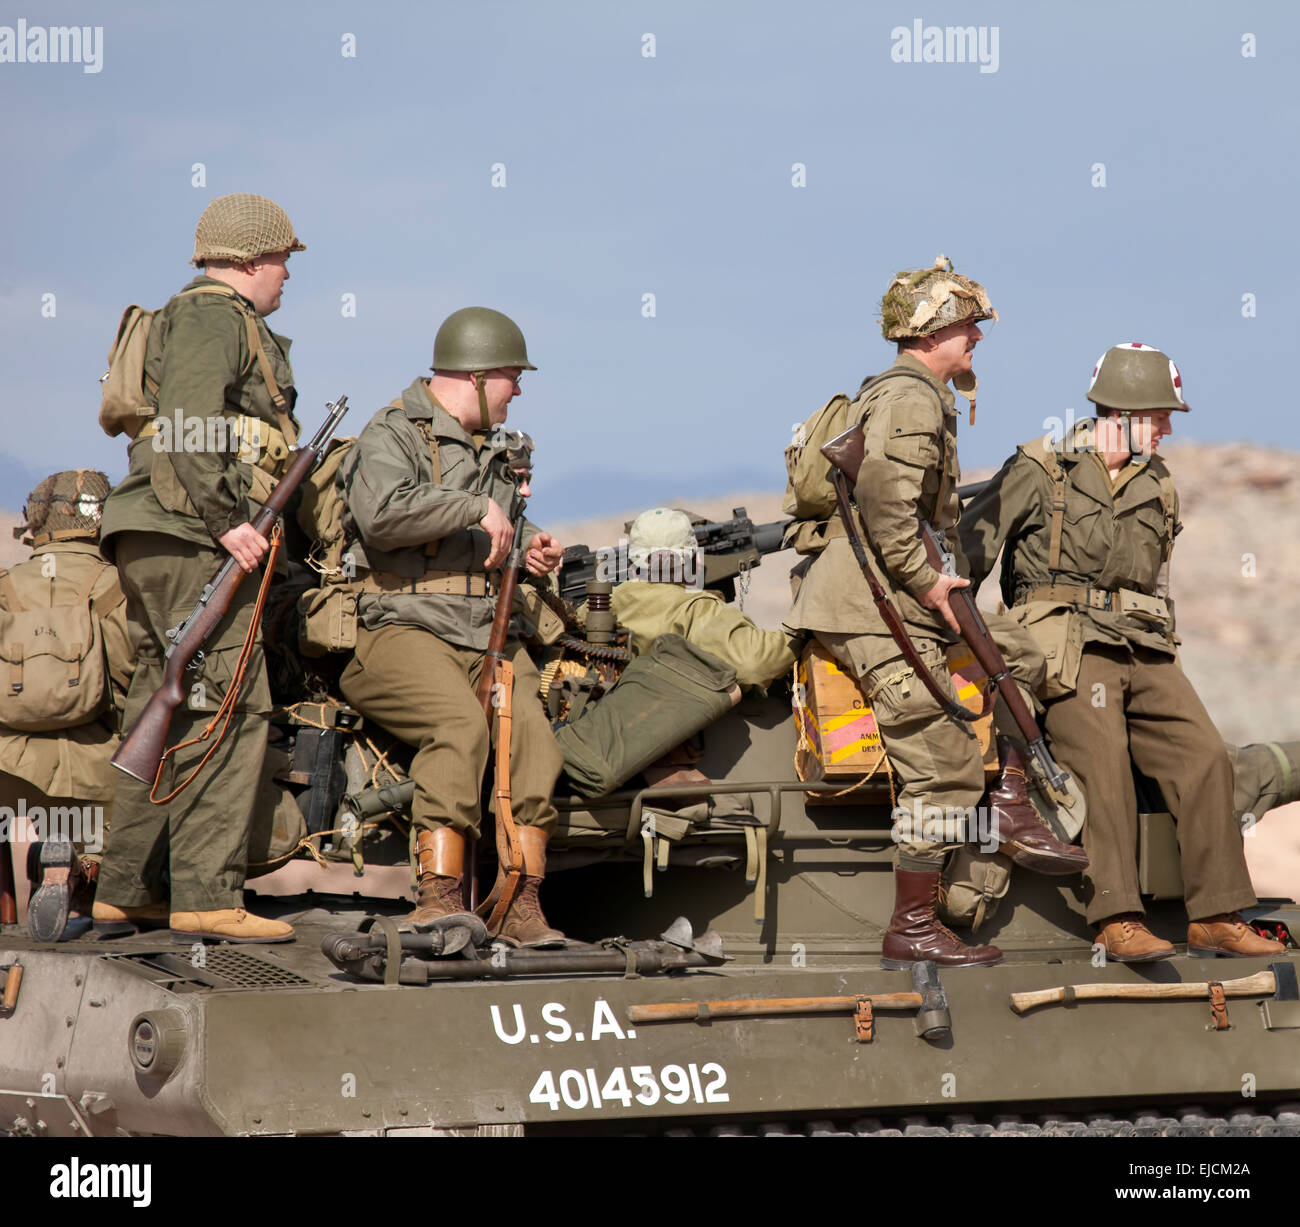 us army troops sitting on tank wearing world war ii uniforms and